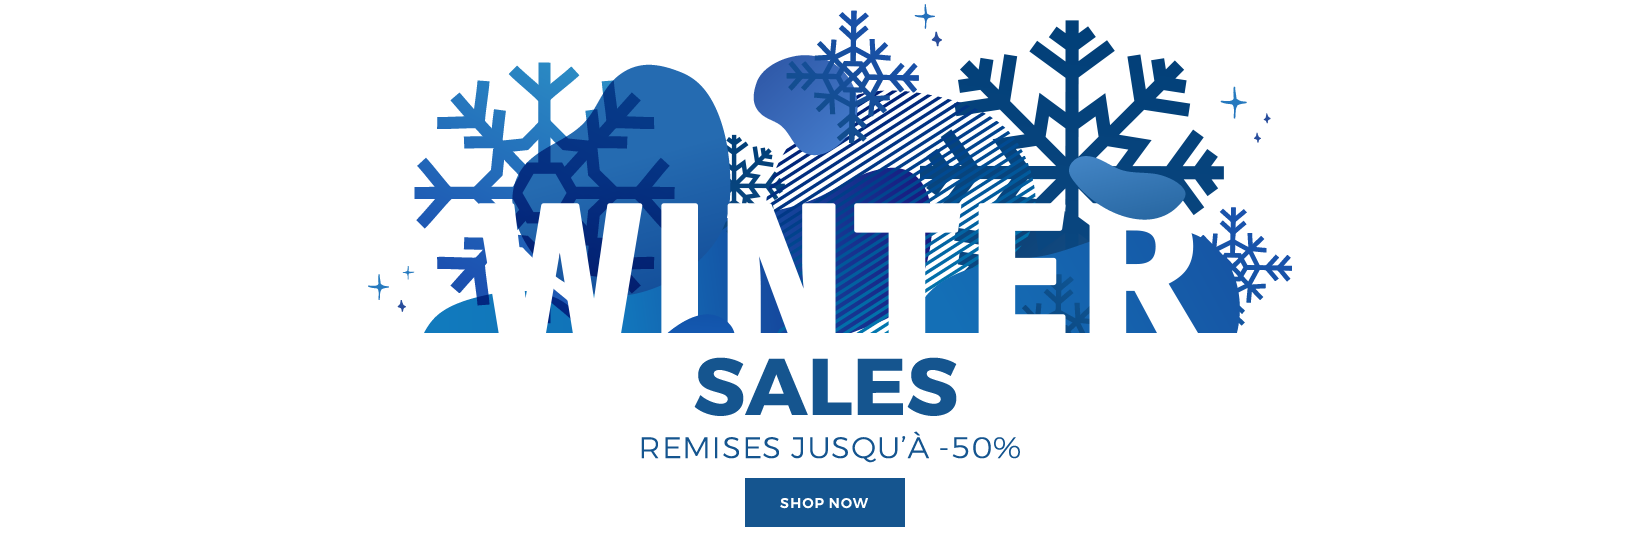 WINTER SALES REMISES JUSQU'À -50% EXPIRE LE 31.01